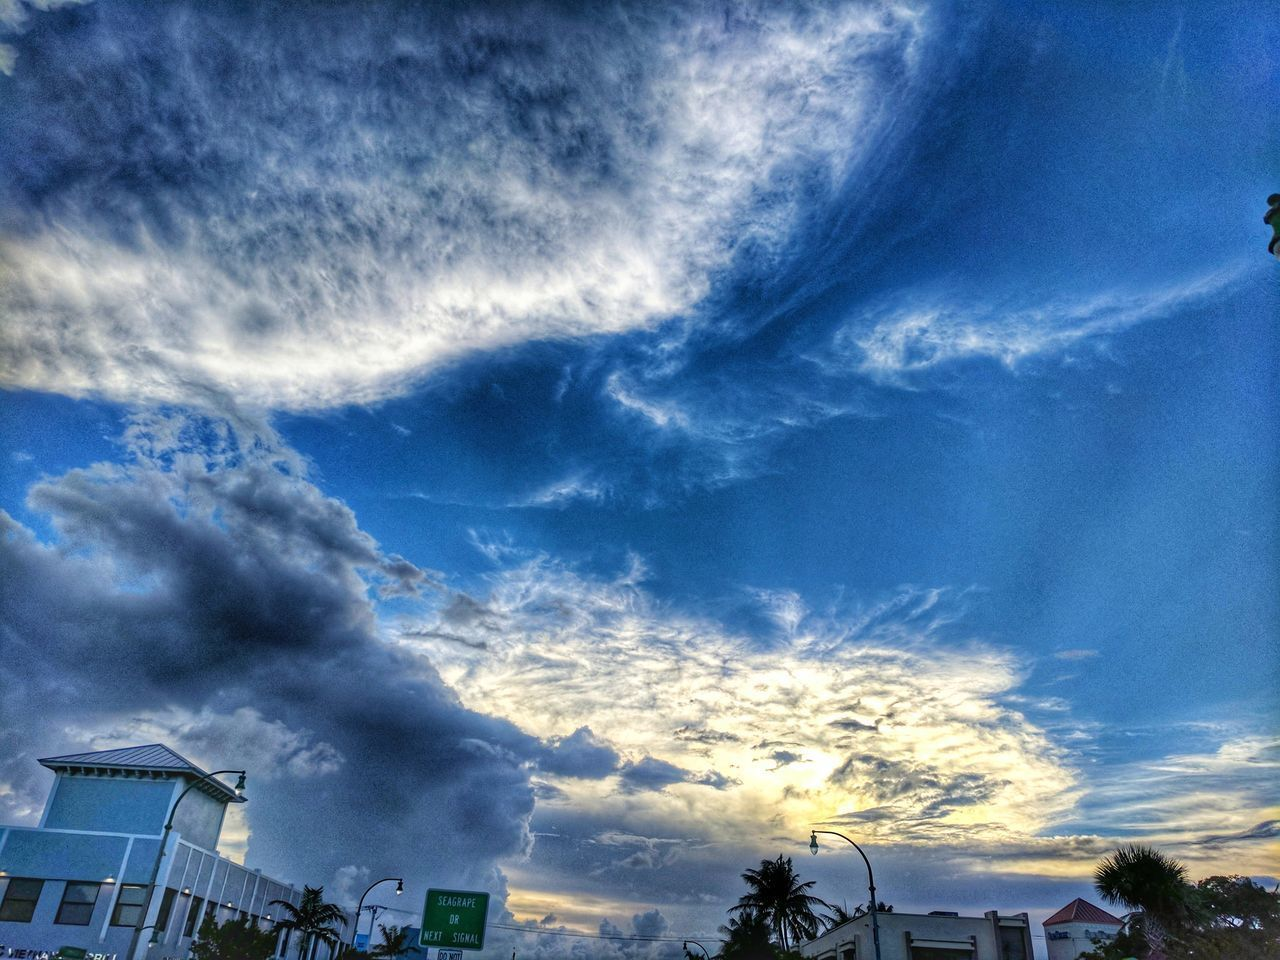 cloud - sky, sky, beauty in nature, low angle view, no people, nature, blue, outdoors, built structure, building exterior, scenics, day, architecture, tree, vapor trail